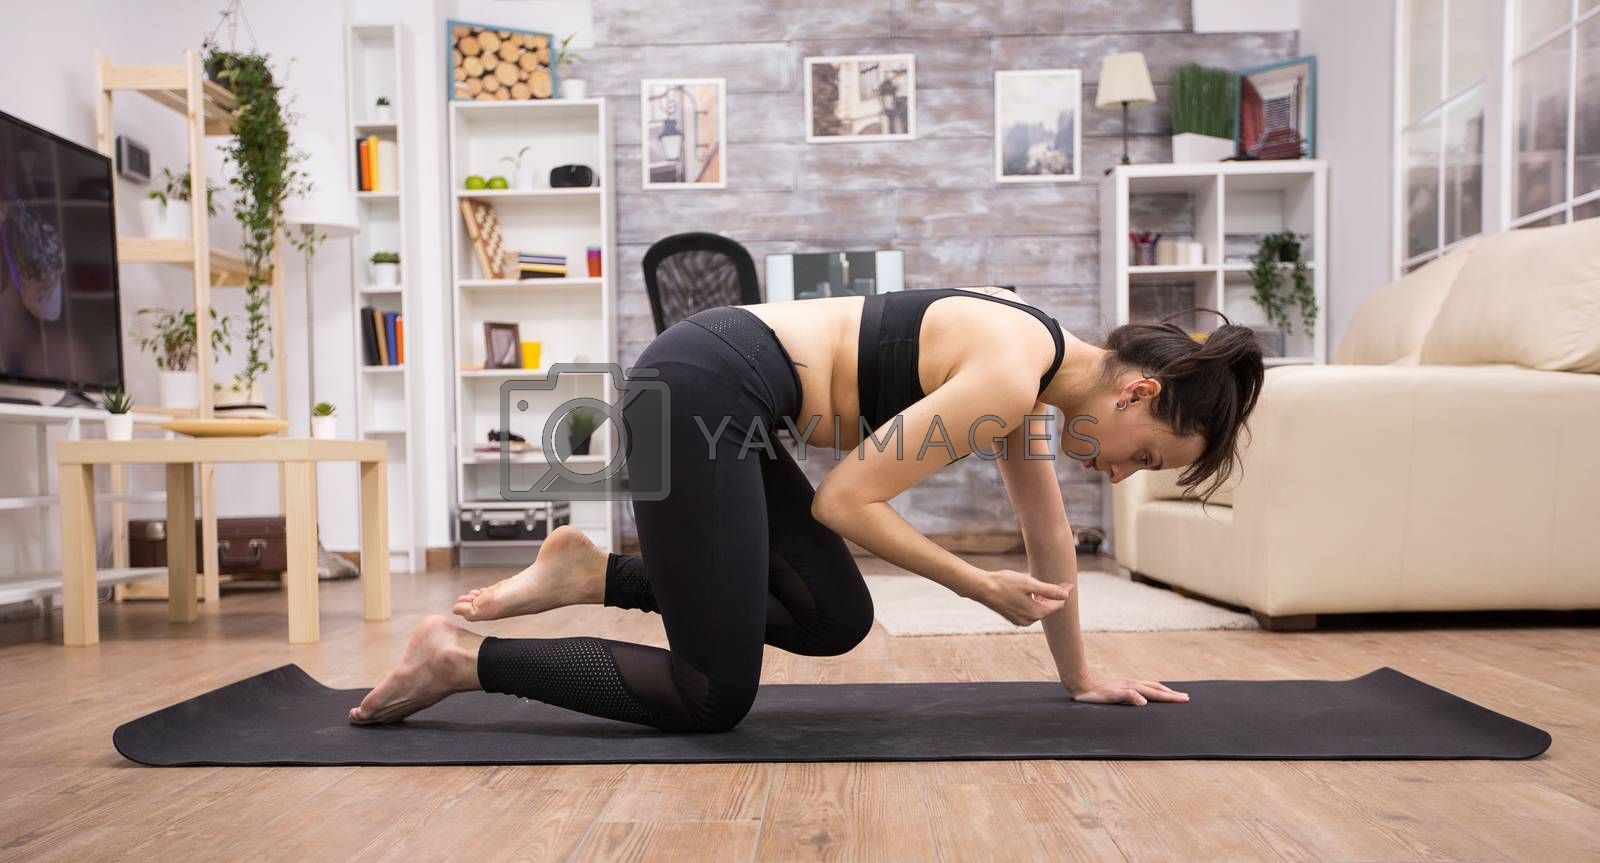 Adult with woman with healthy lifestyle doing yoga pose by DCStudio